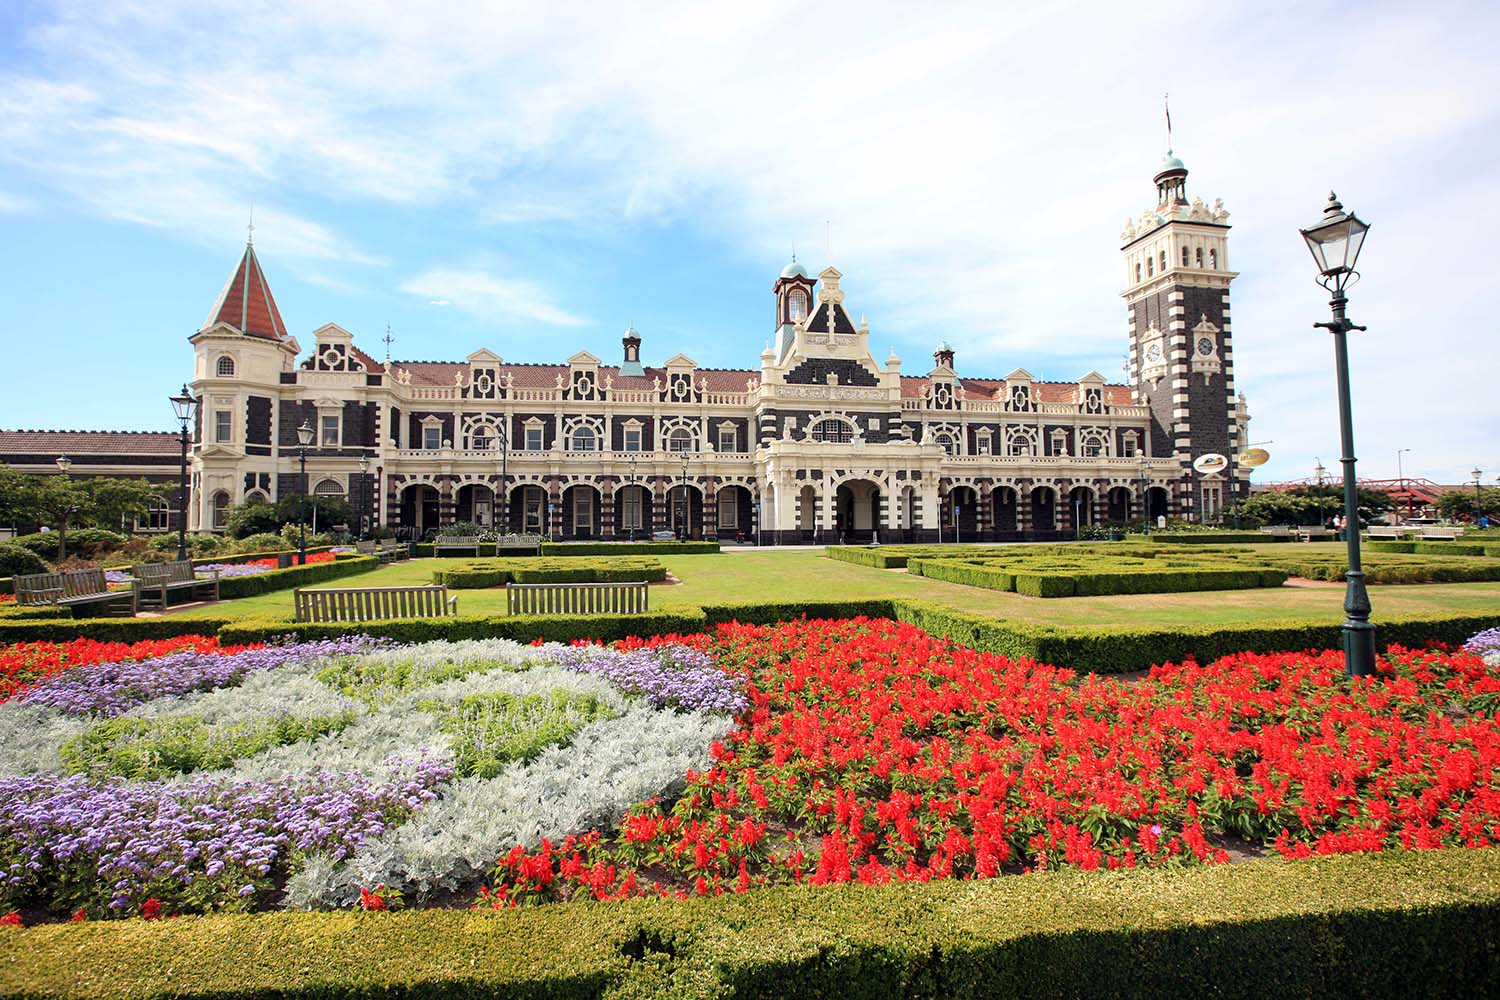 The Dunedin Train Station